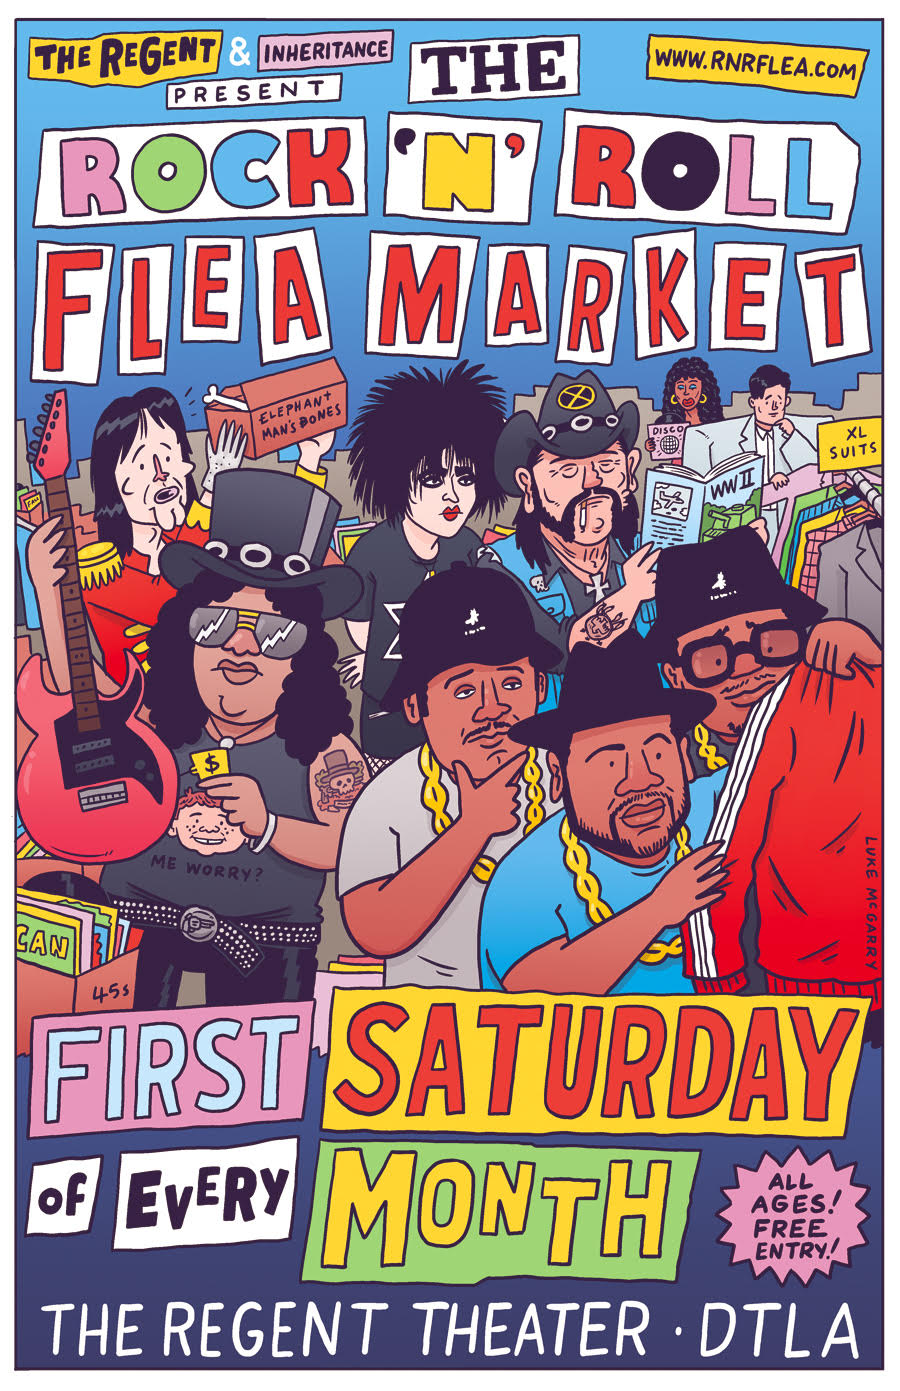 Rock and Rock Flea Market Flyer